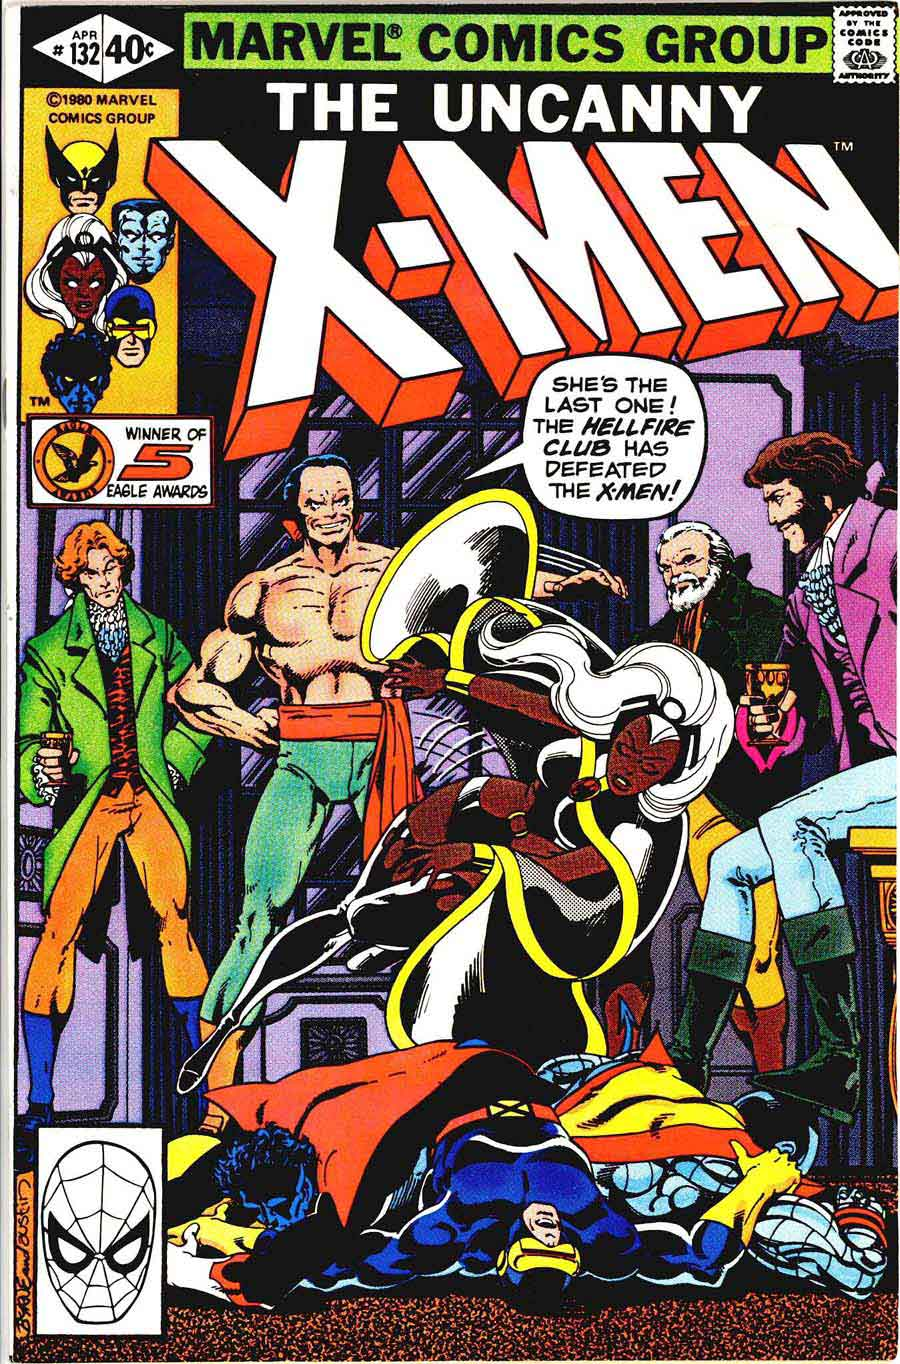 X-men v1 #132 marvel comic book cover art by John Byrne